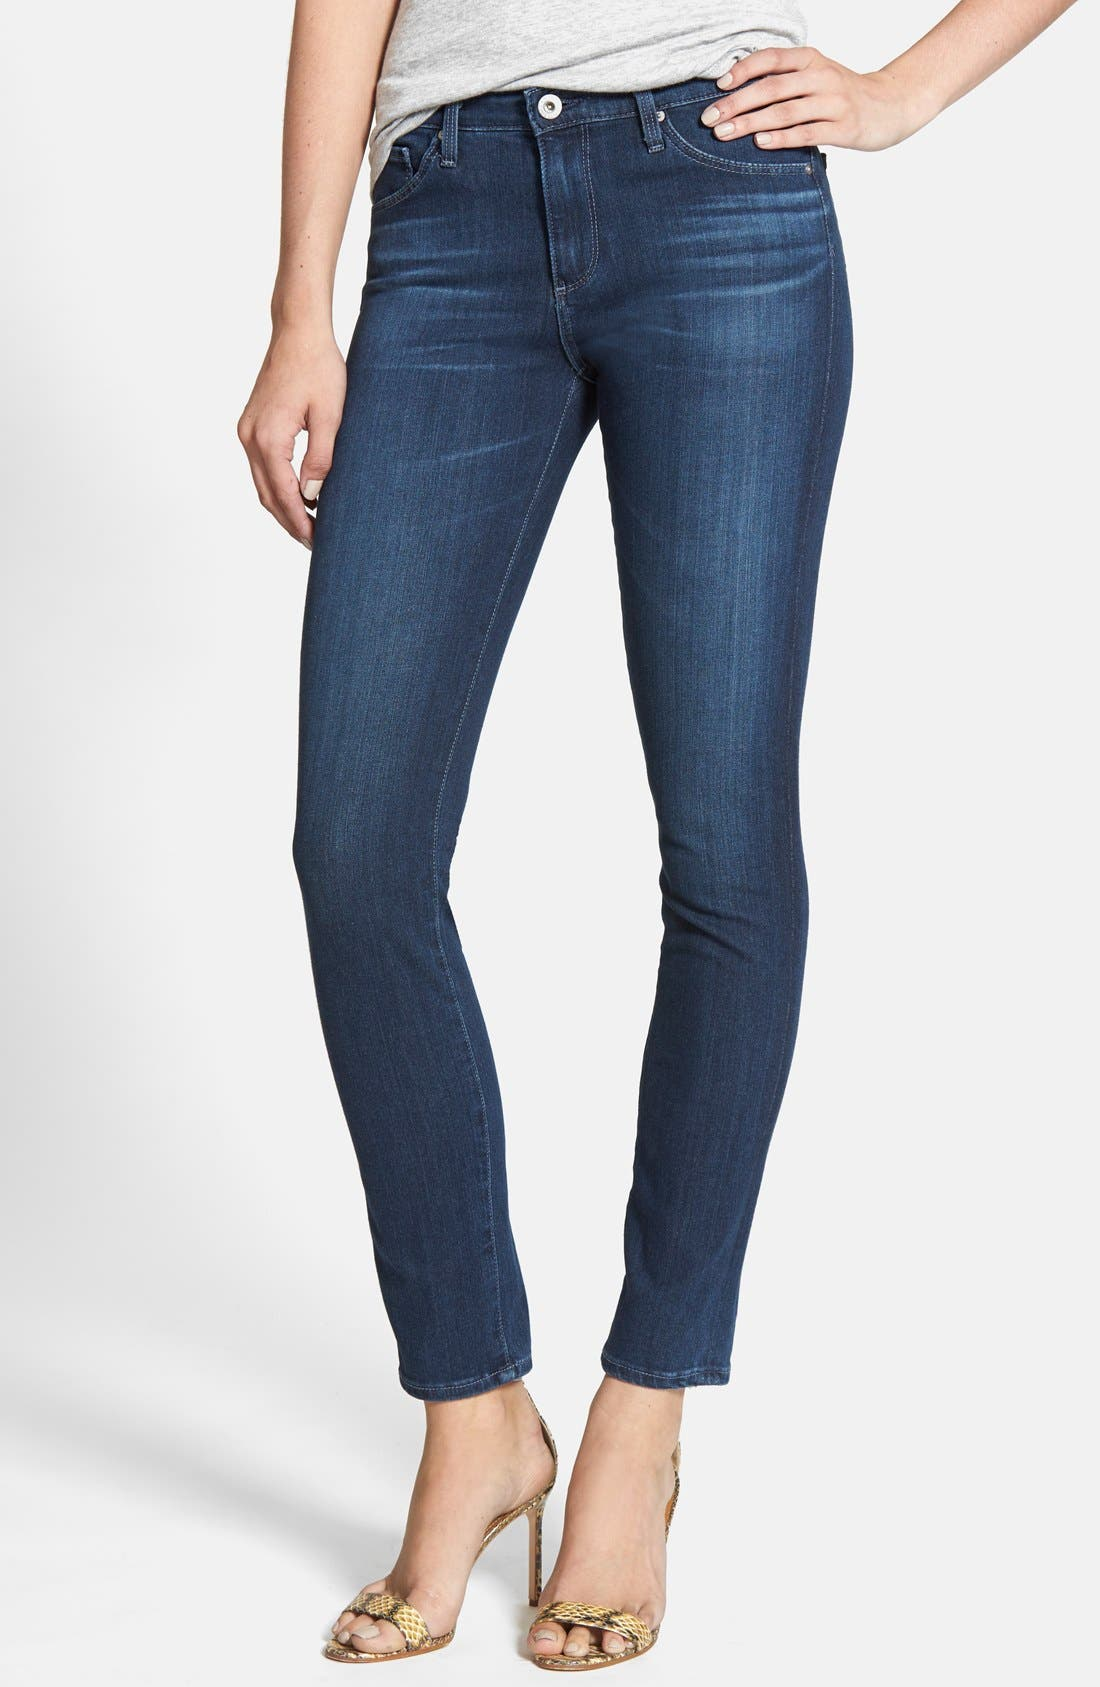 'Contour 360 - The Prima' Cigarette Leg Skinny Jeans,                             Main thumbnail 1, color,                             400